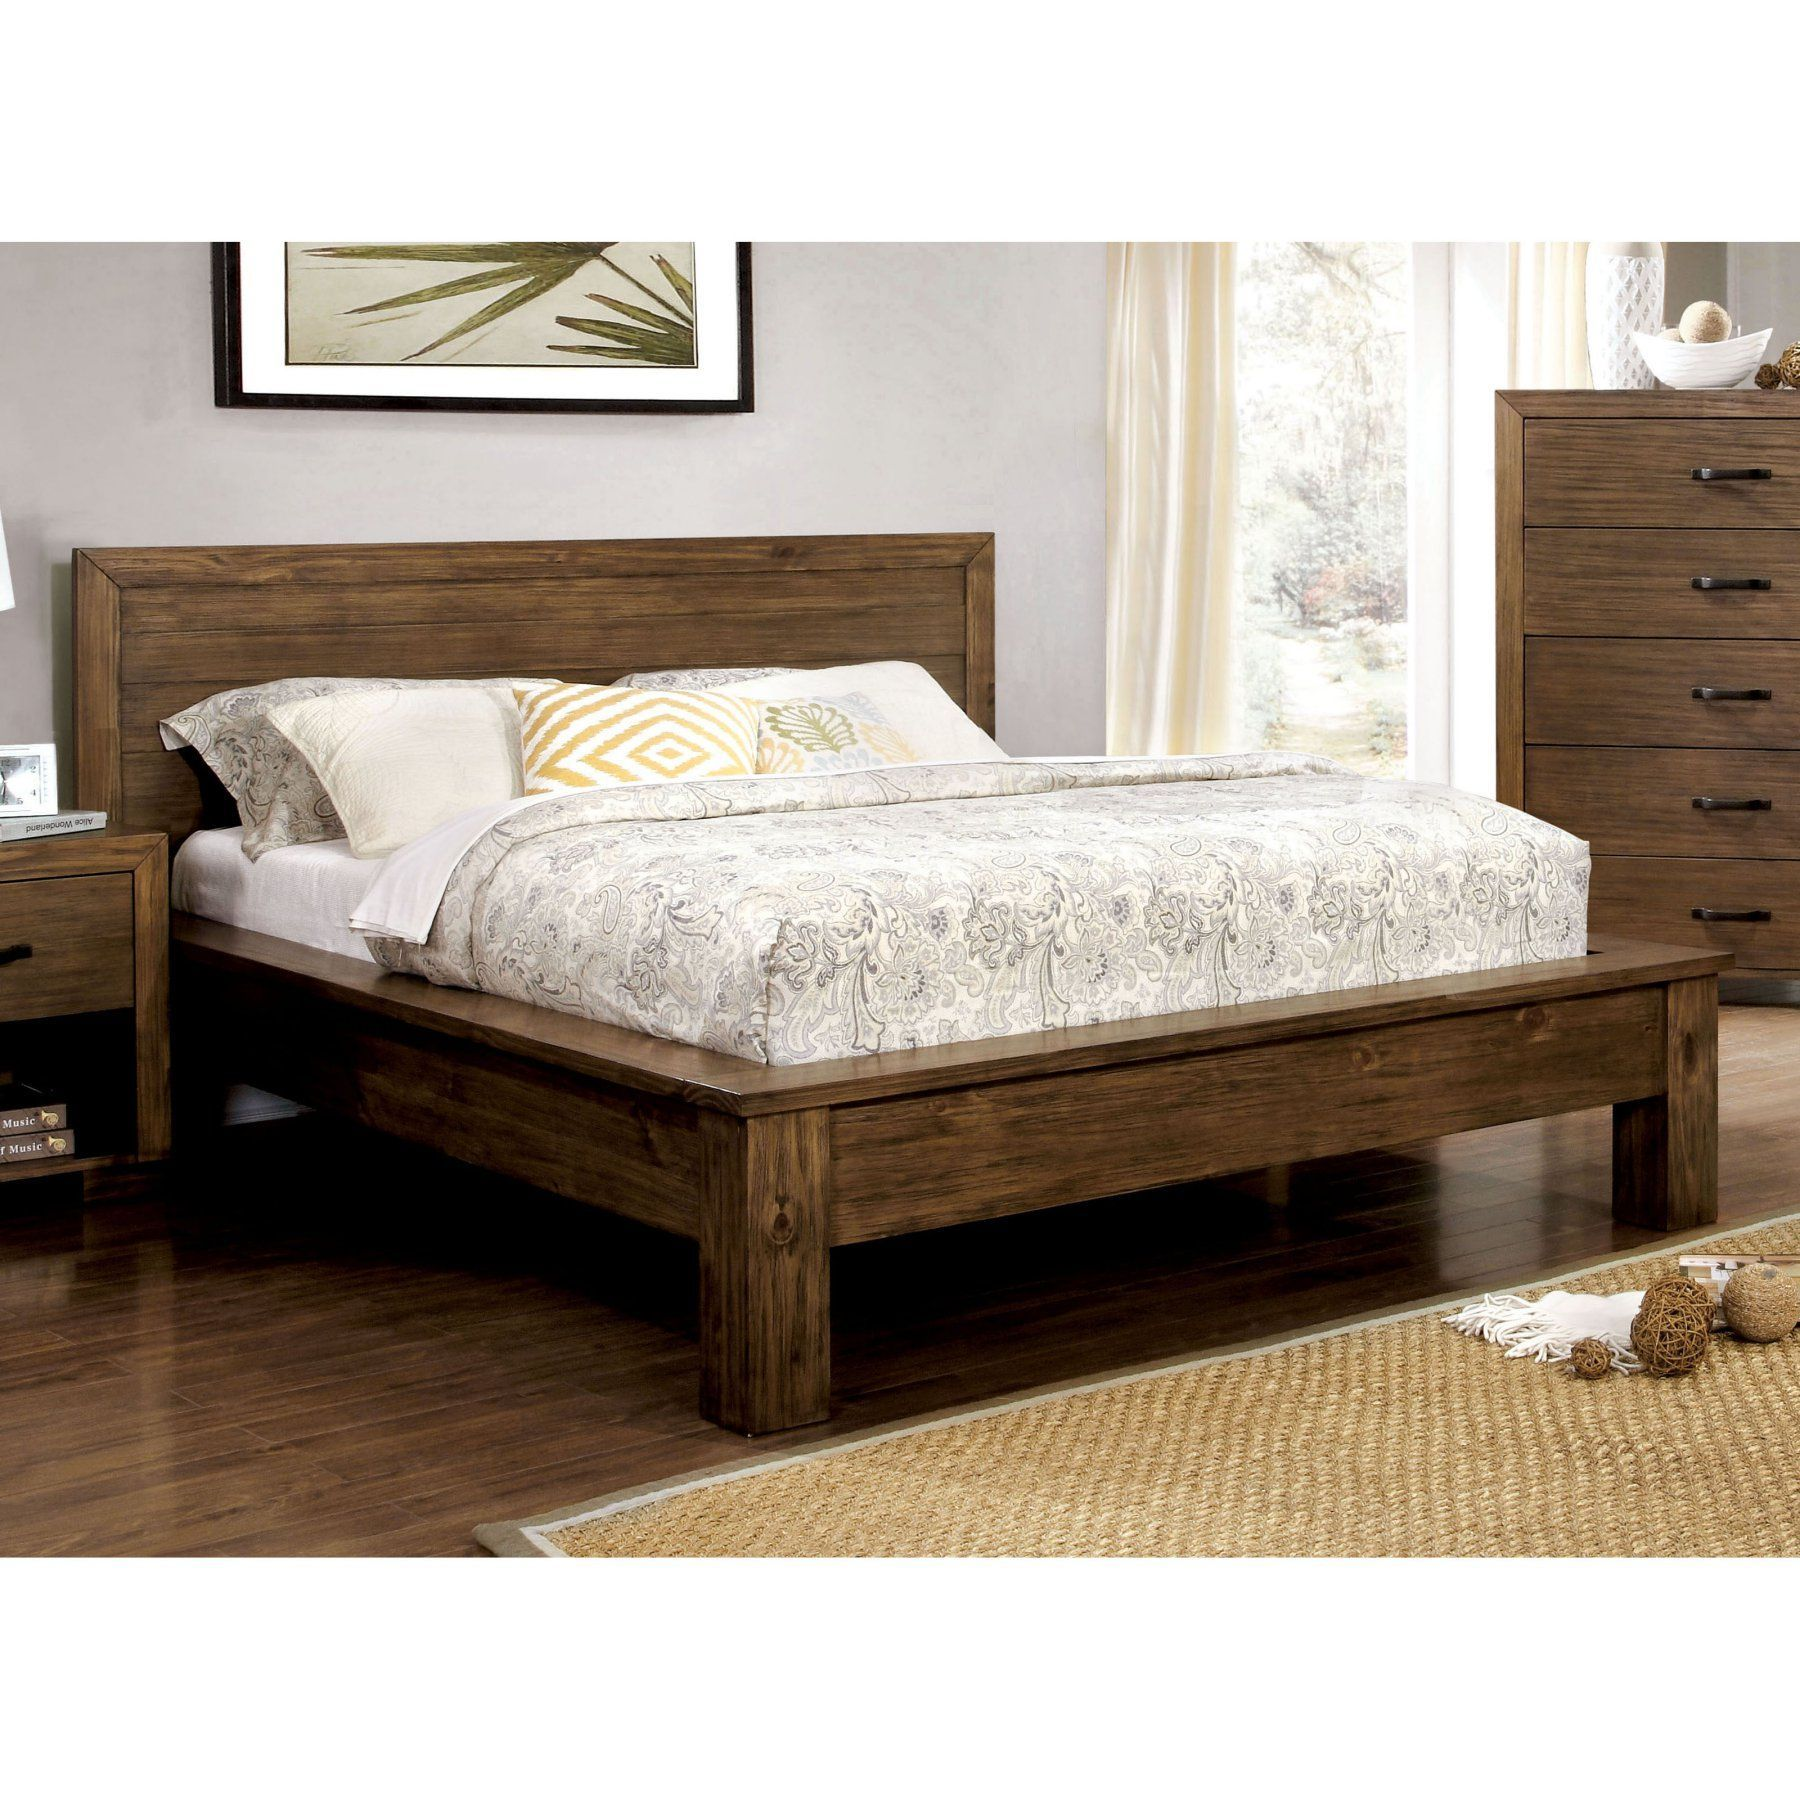 Bedroom Furniture Miami Its Furniture Stores Near Me That: Furniture Of America Ophelia Panel Bed